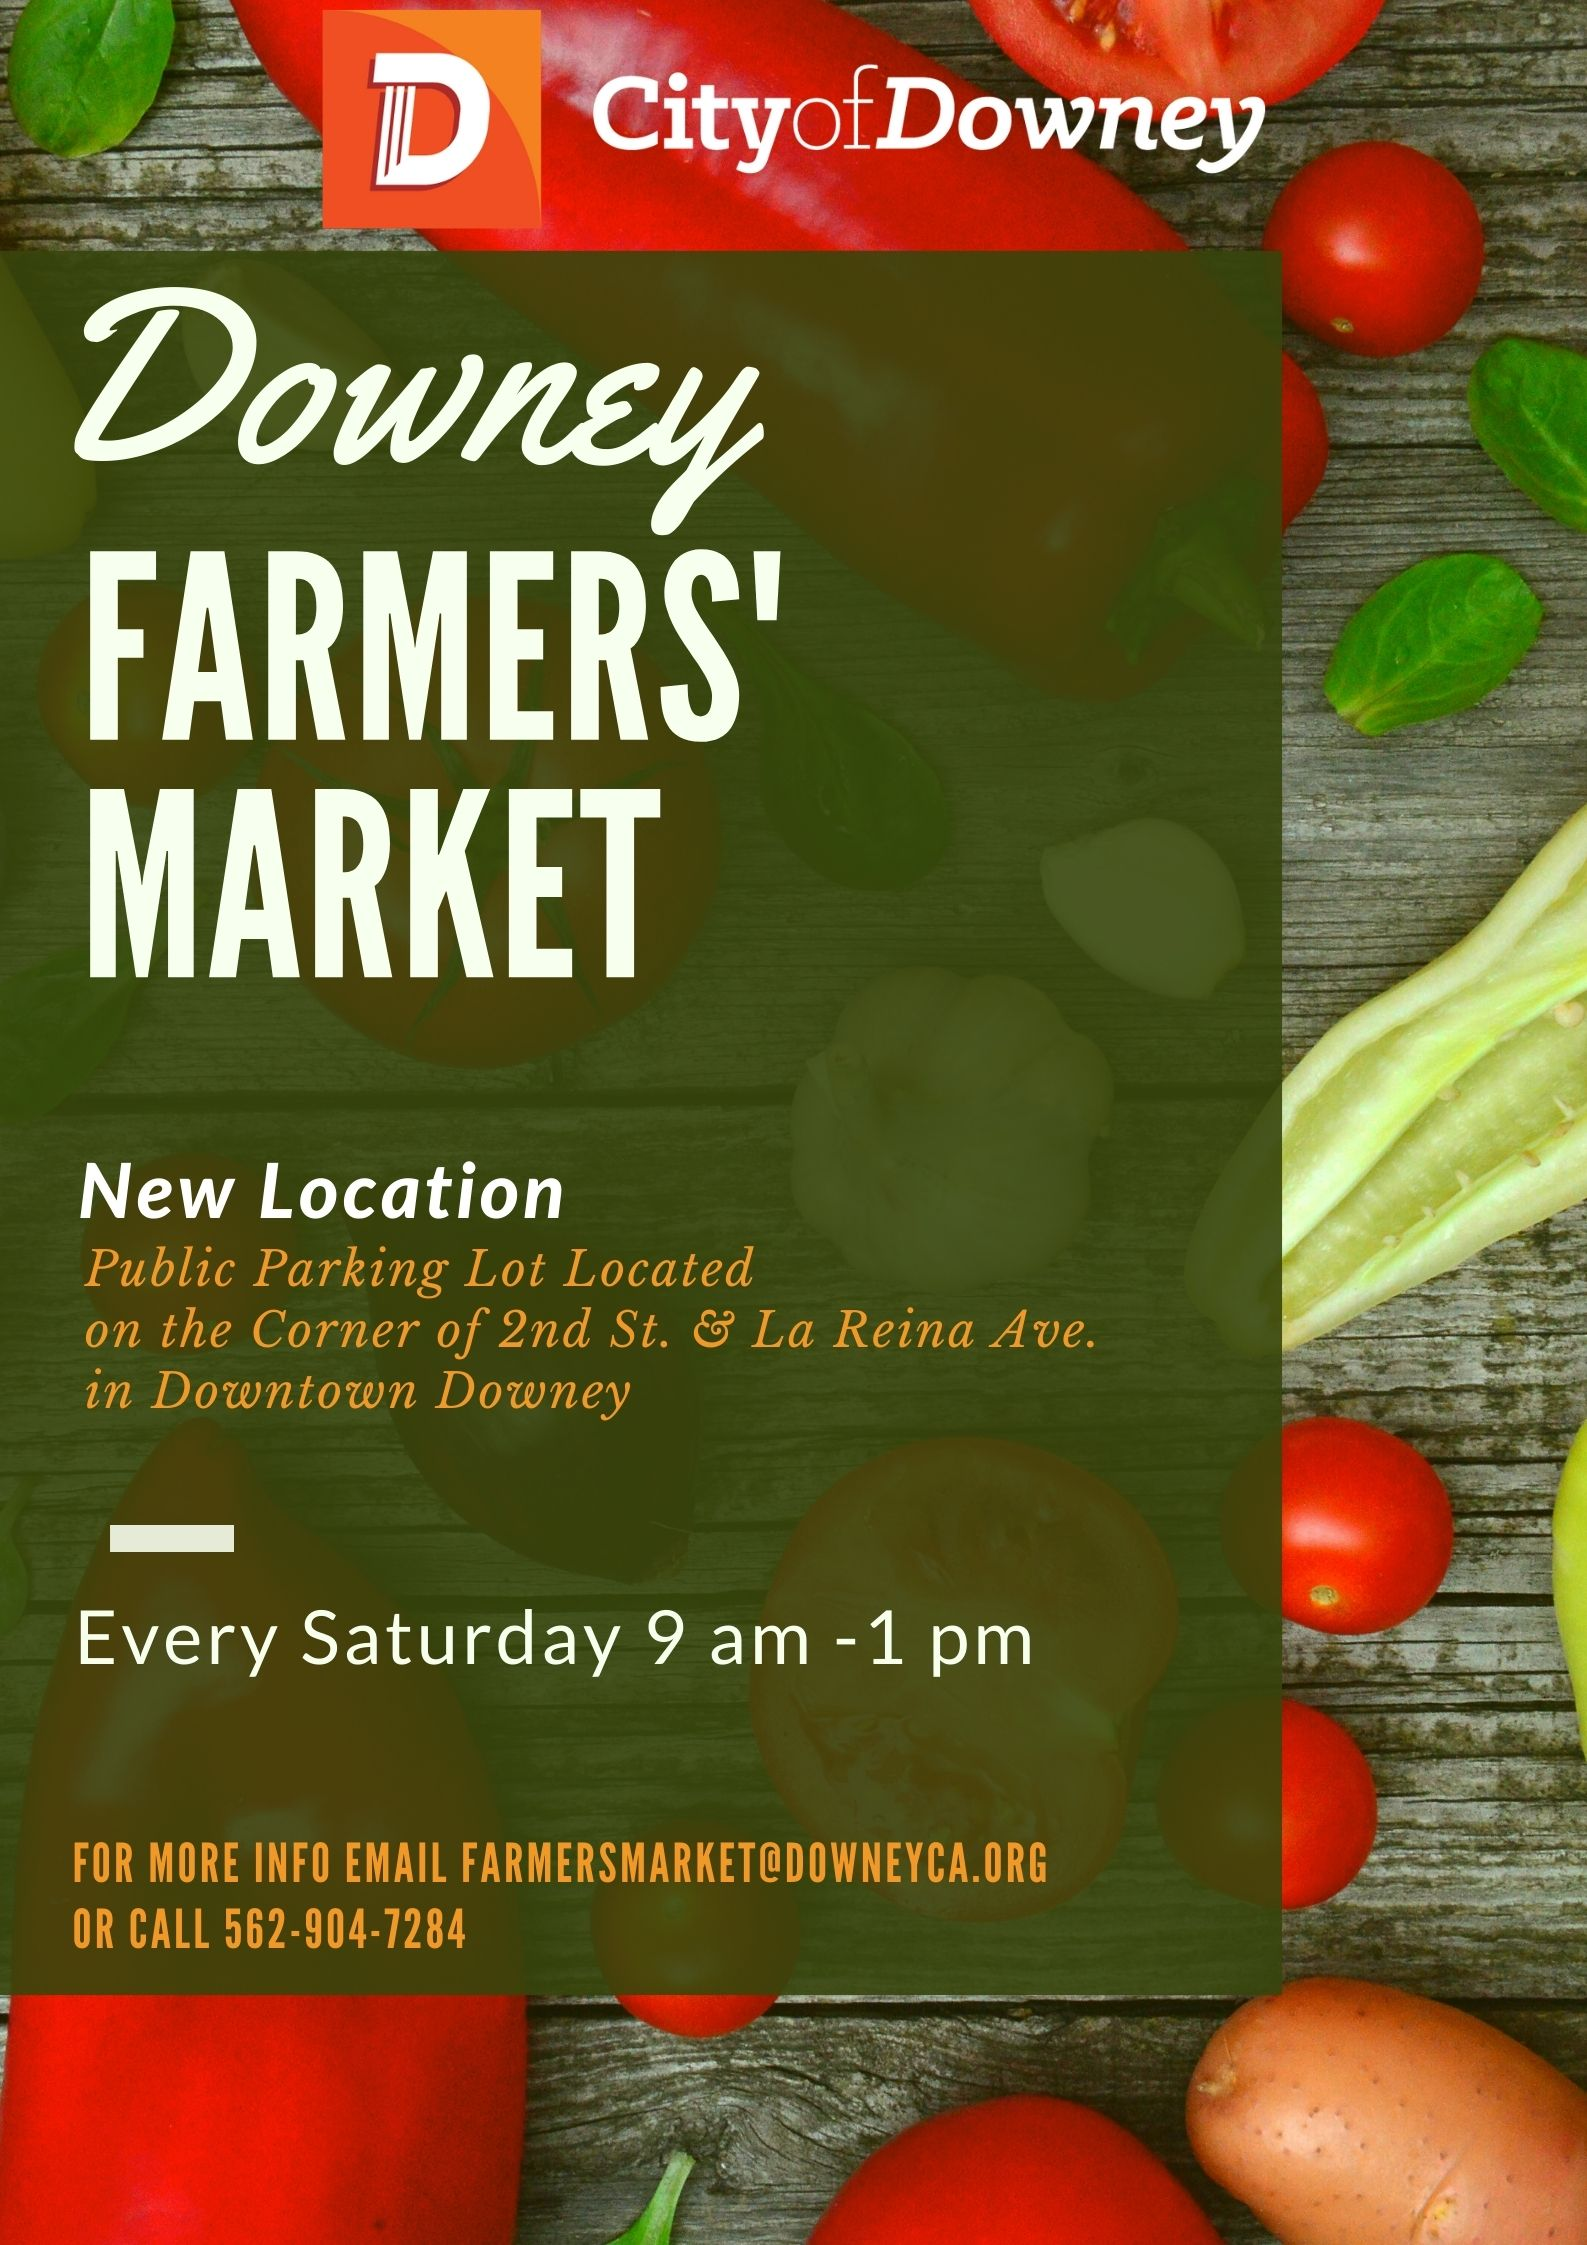 Downey Farmers' Market New Location